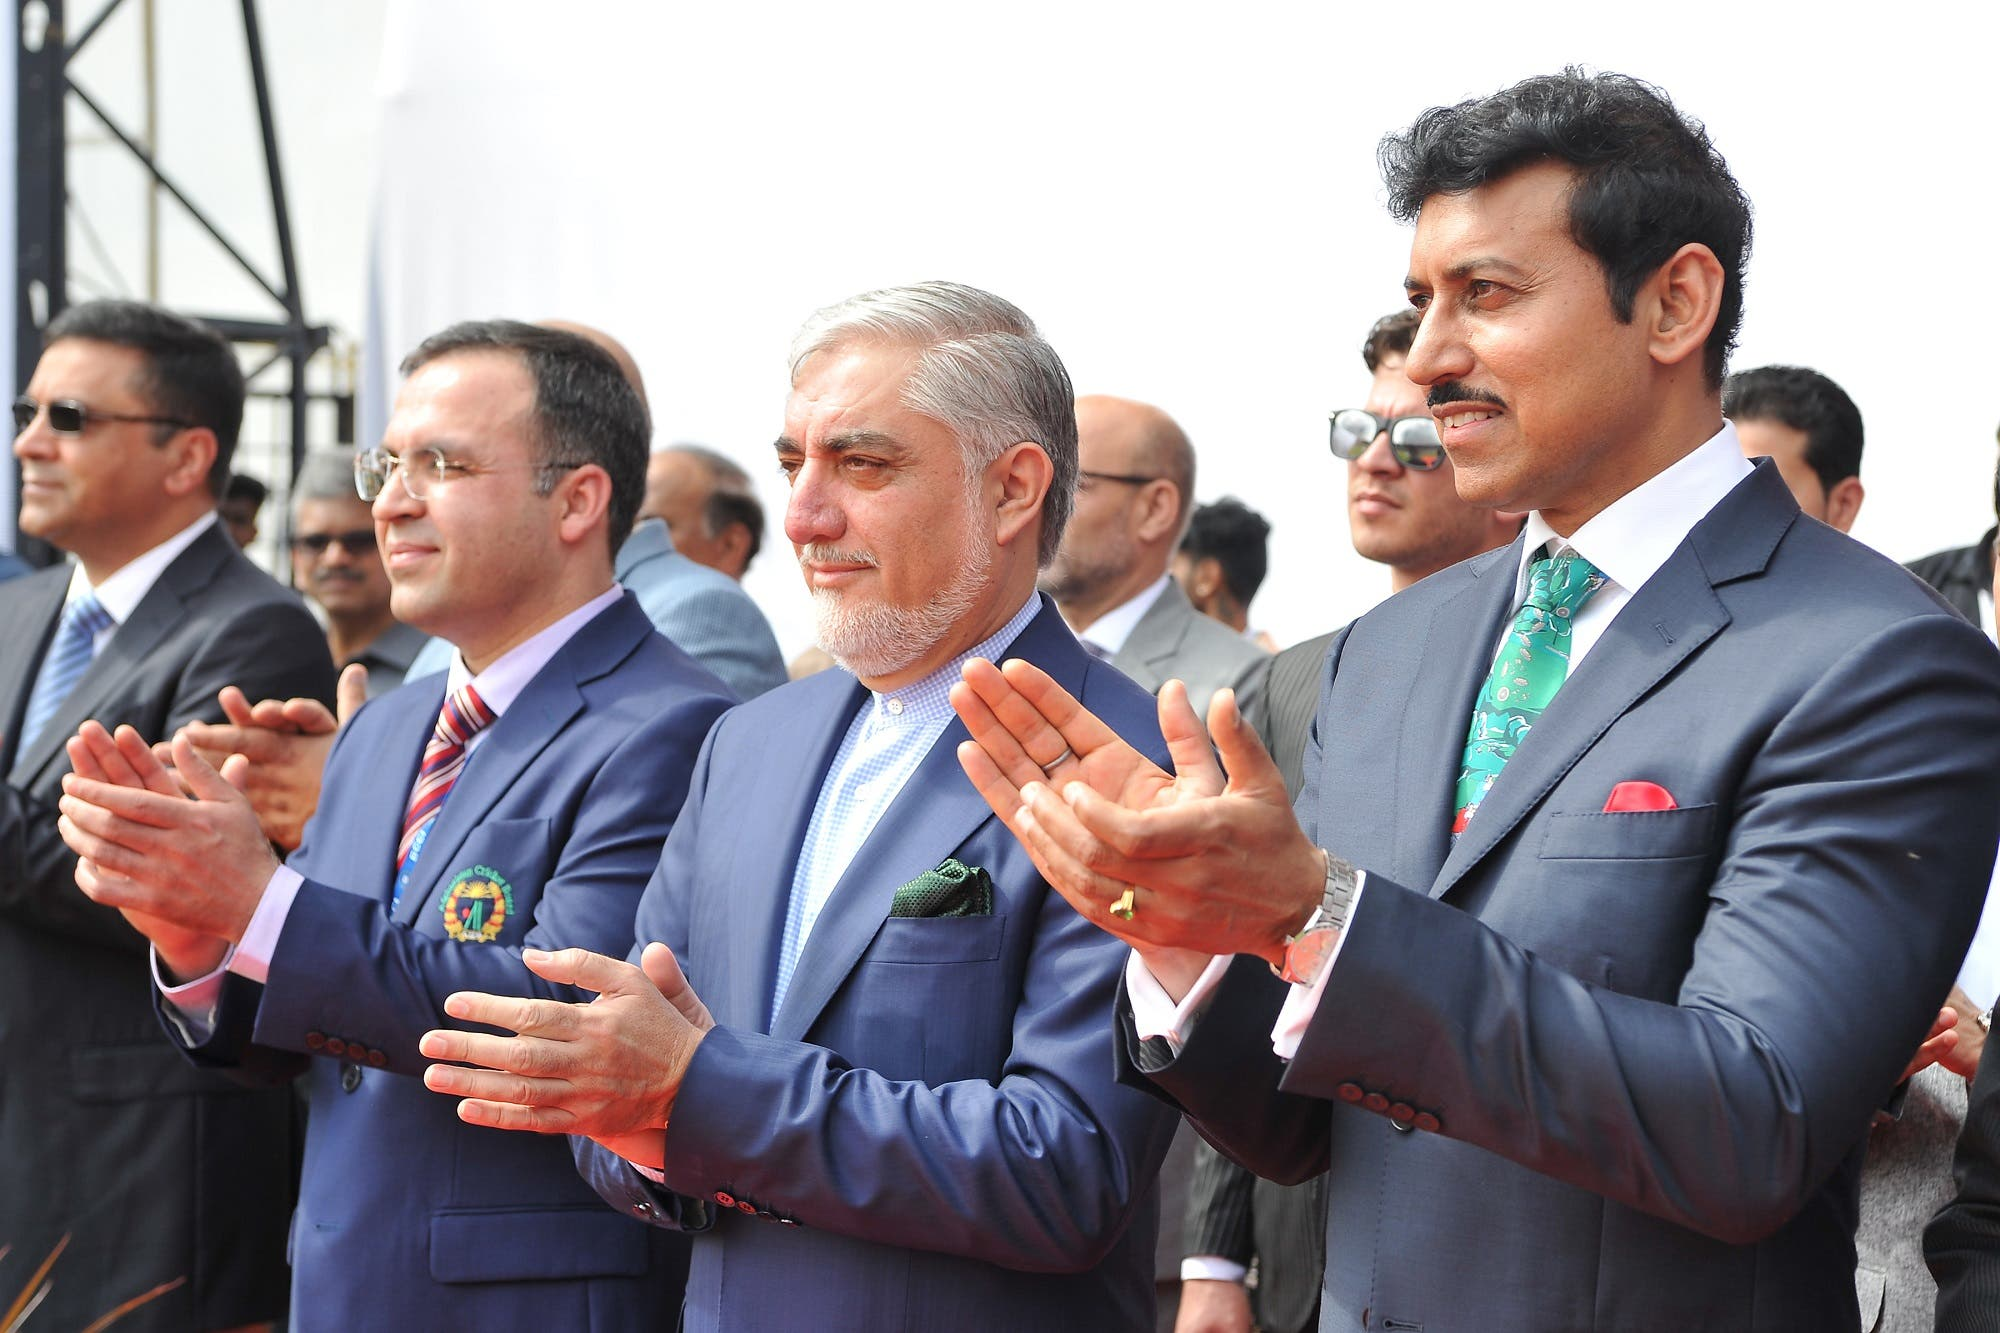 India's minister for sports Rajyavardhan Singh Rathore (R) and Afganistan's Chief Executive Abdullah Abdullah (2nd R) applaud prior to the start of the one-off Test match between India and Afghanistan in Bangalore on June 14, 2018. (AFP)